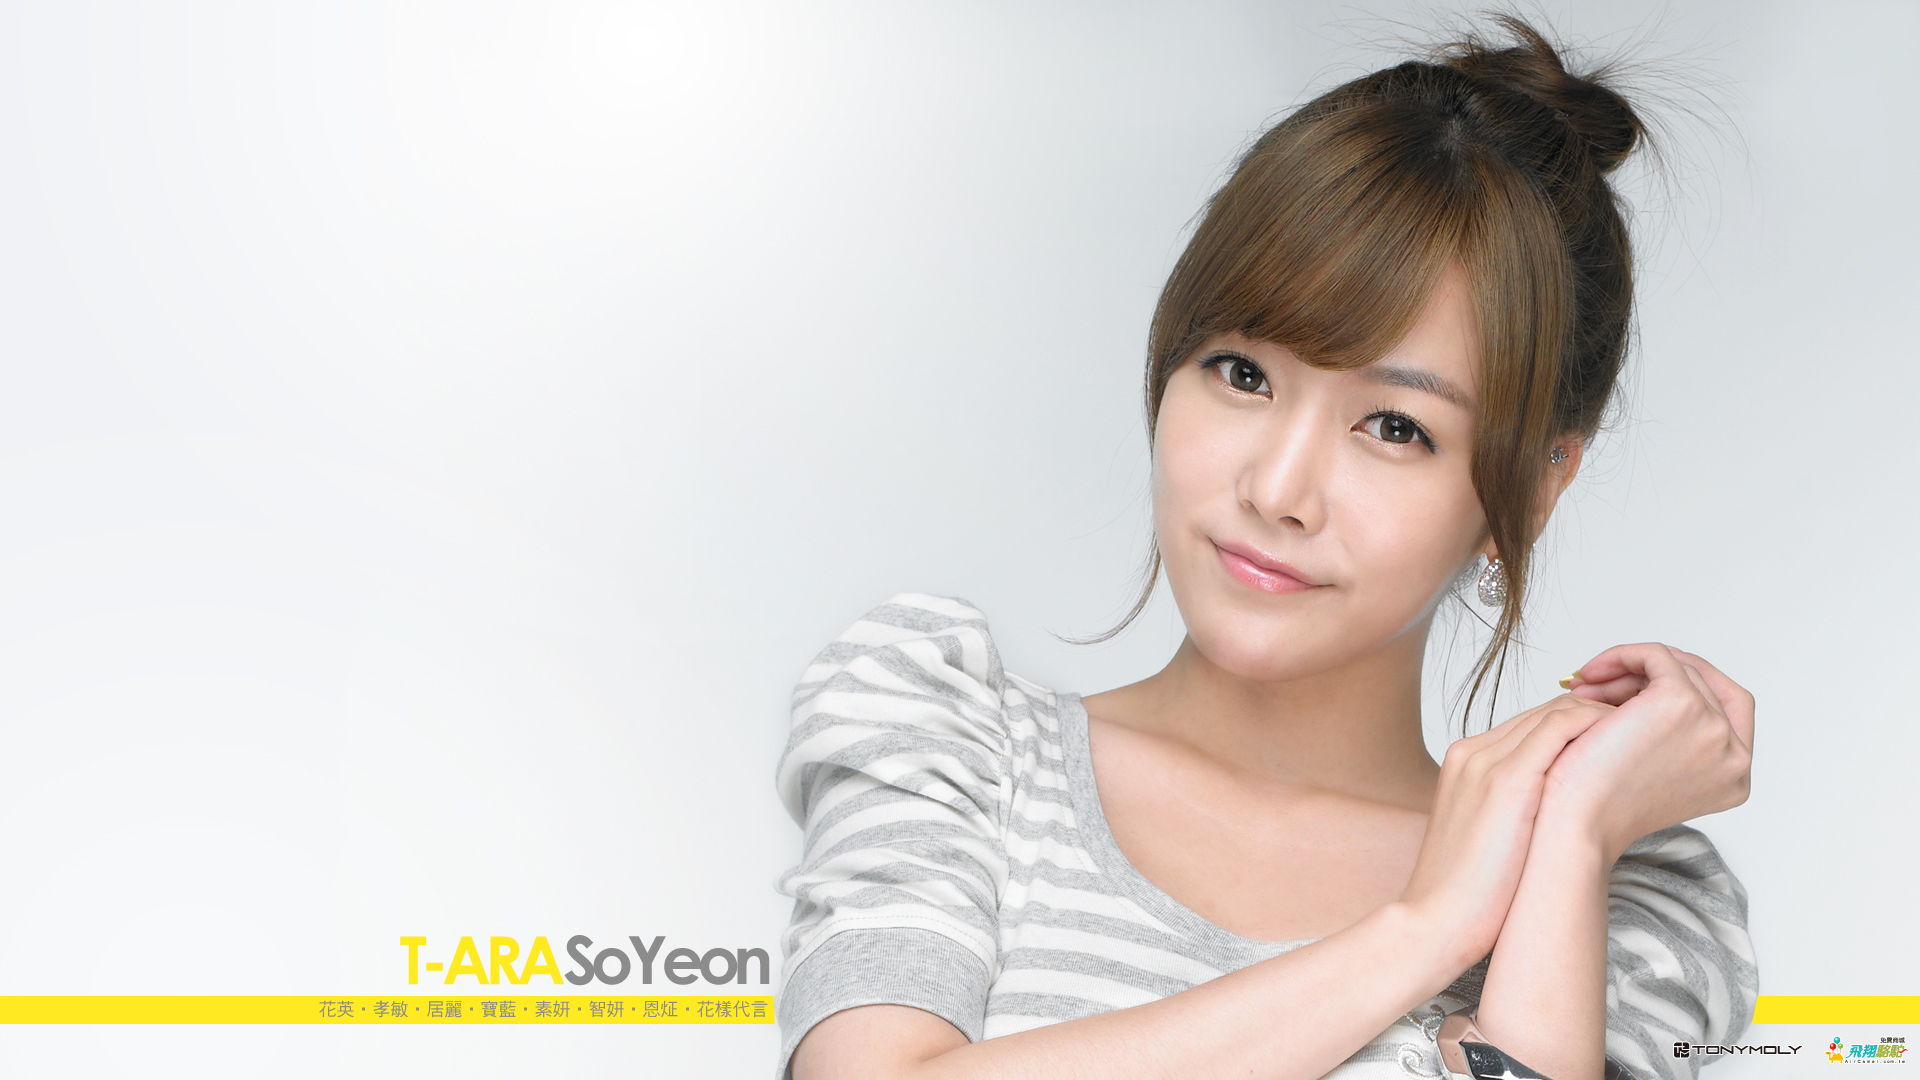 T Ara Jiyeon Tony HD Wallpaper